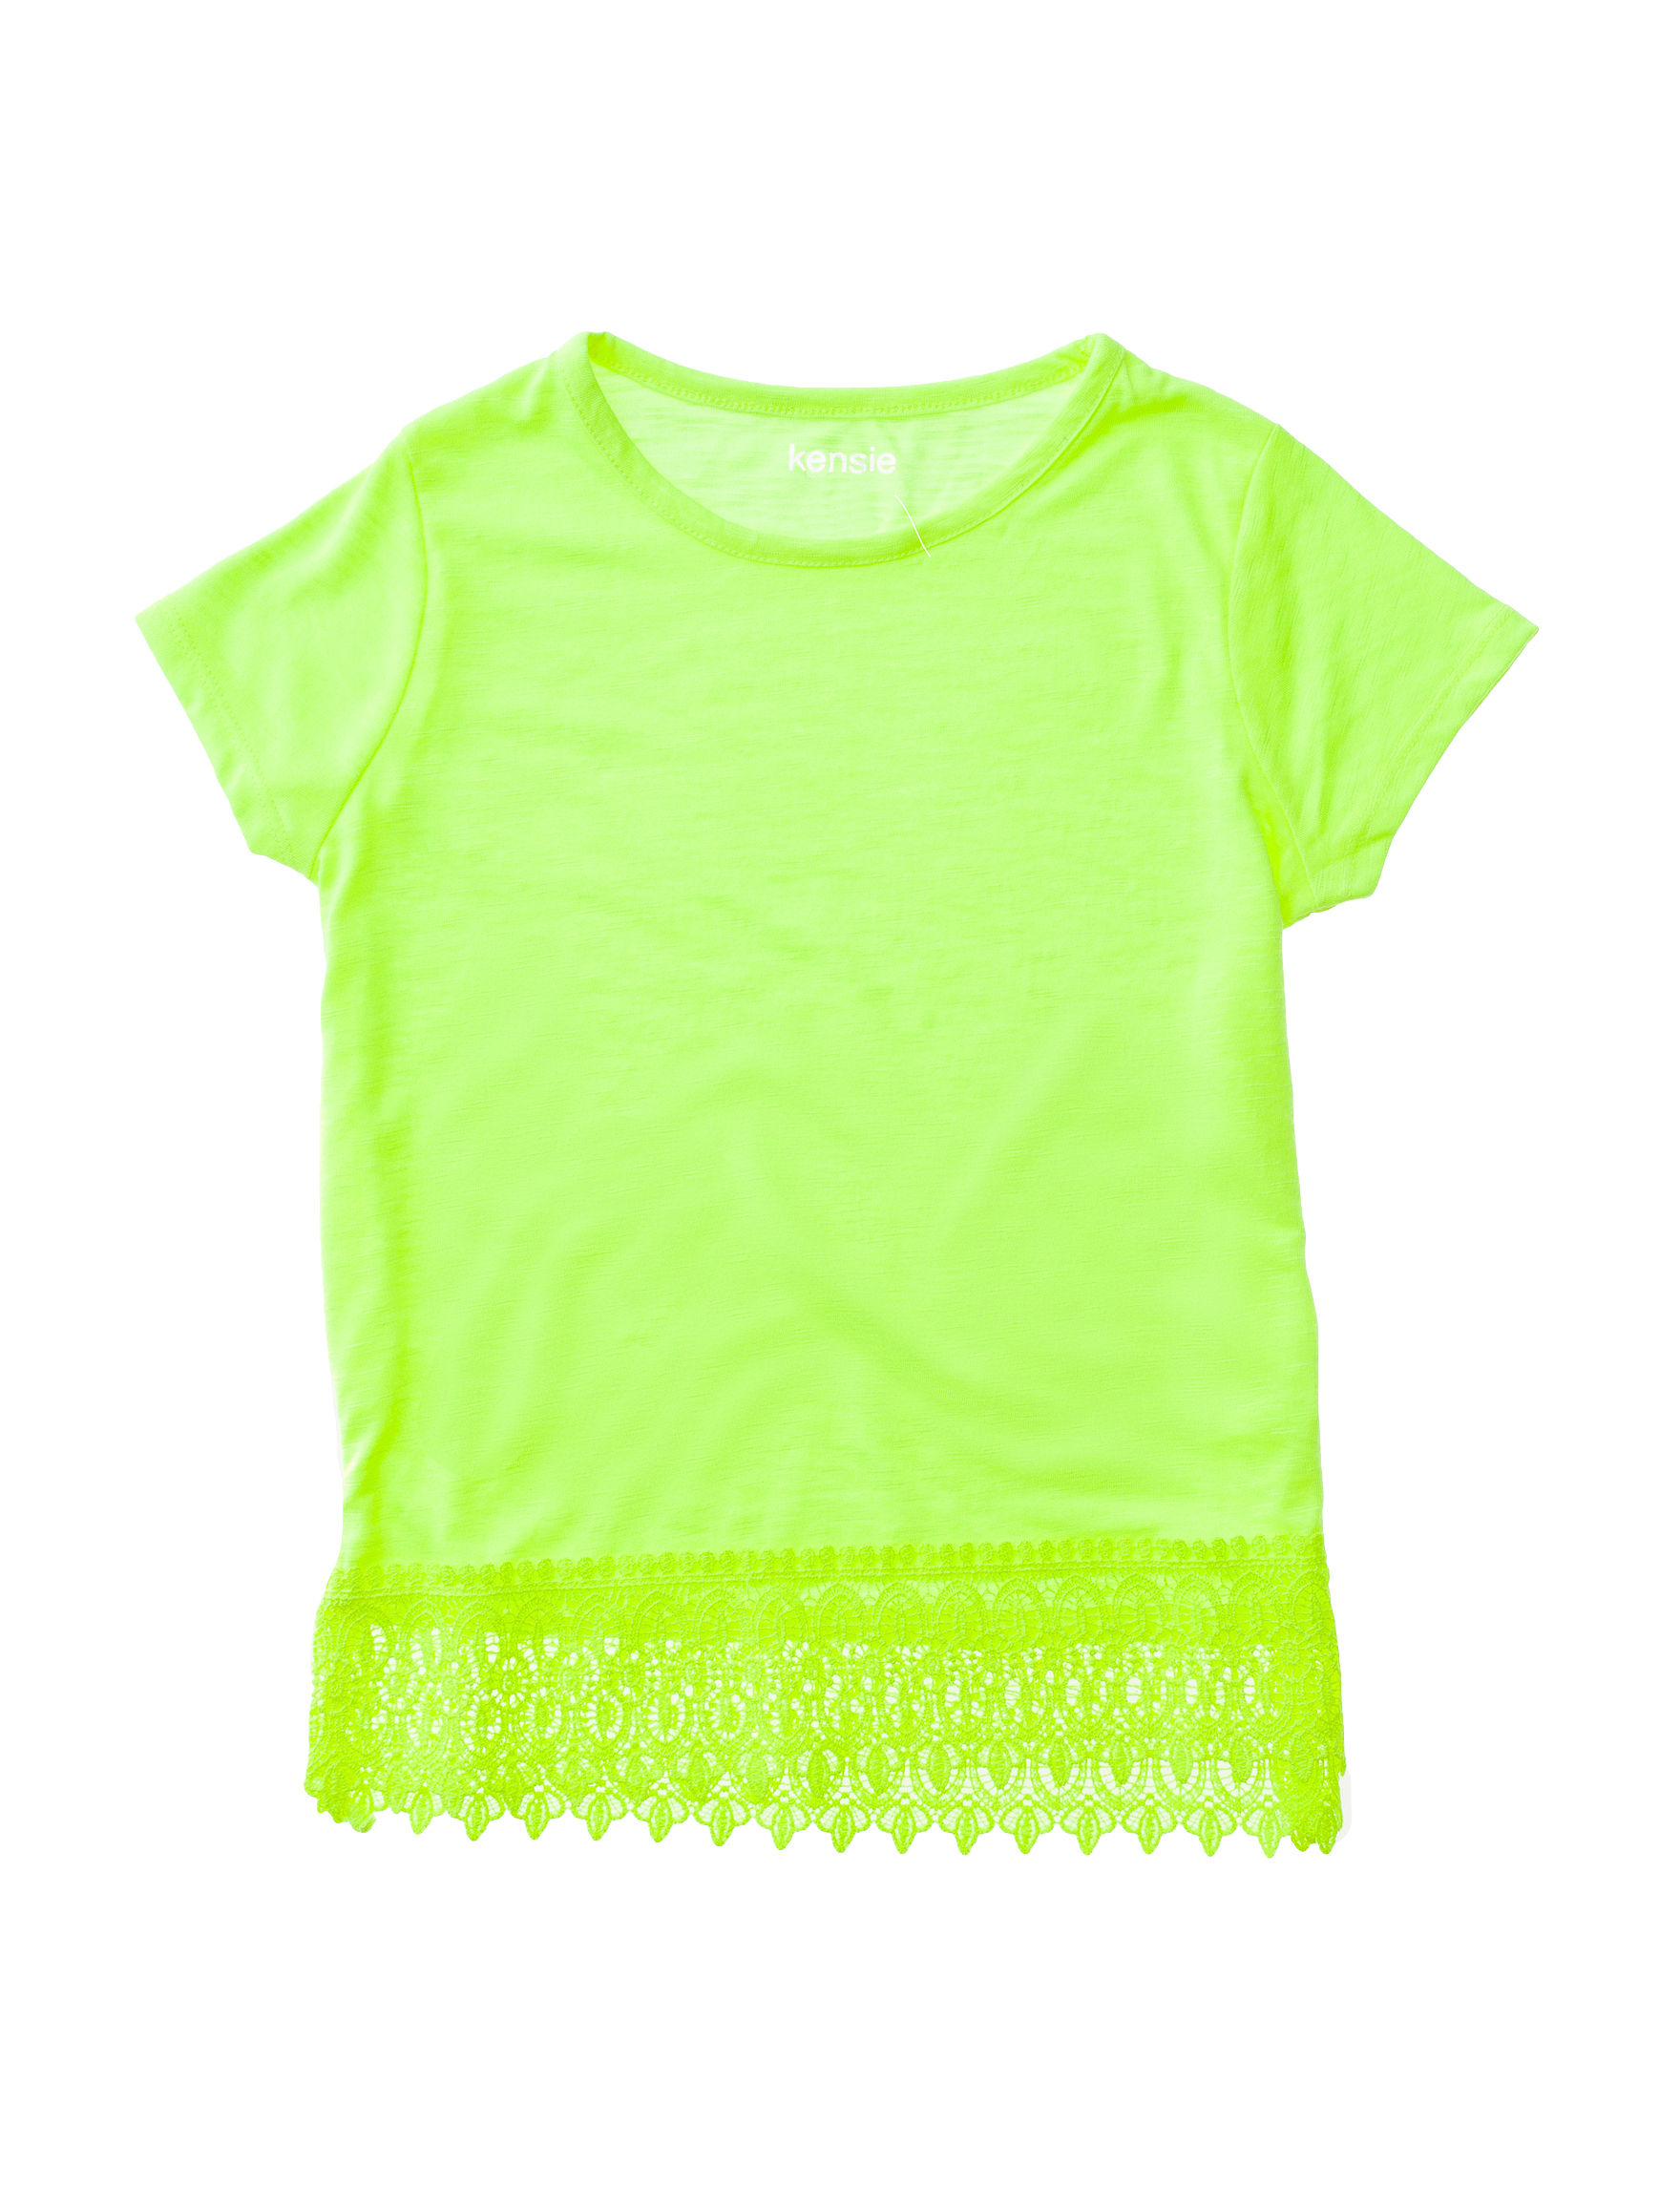 Kensie Lime Green